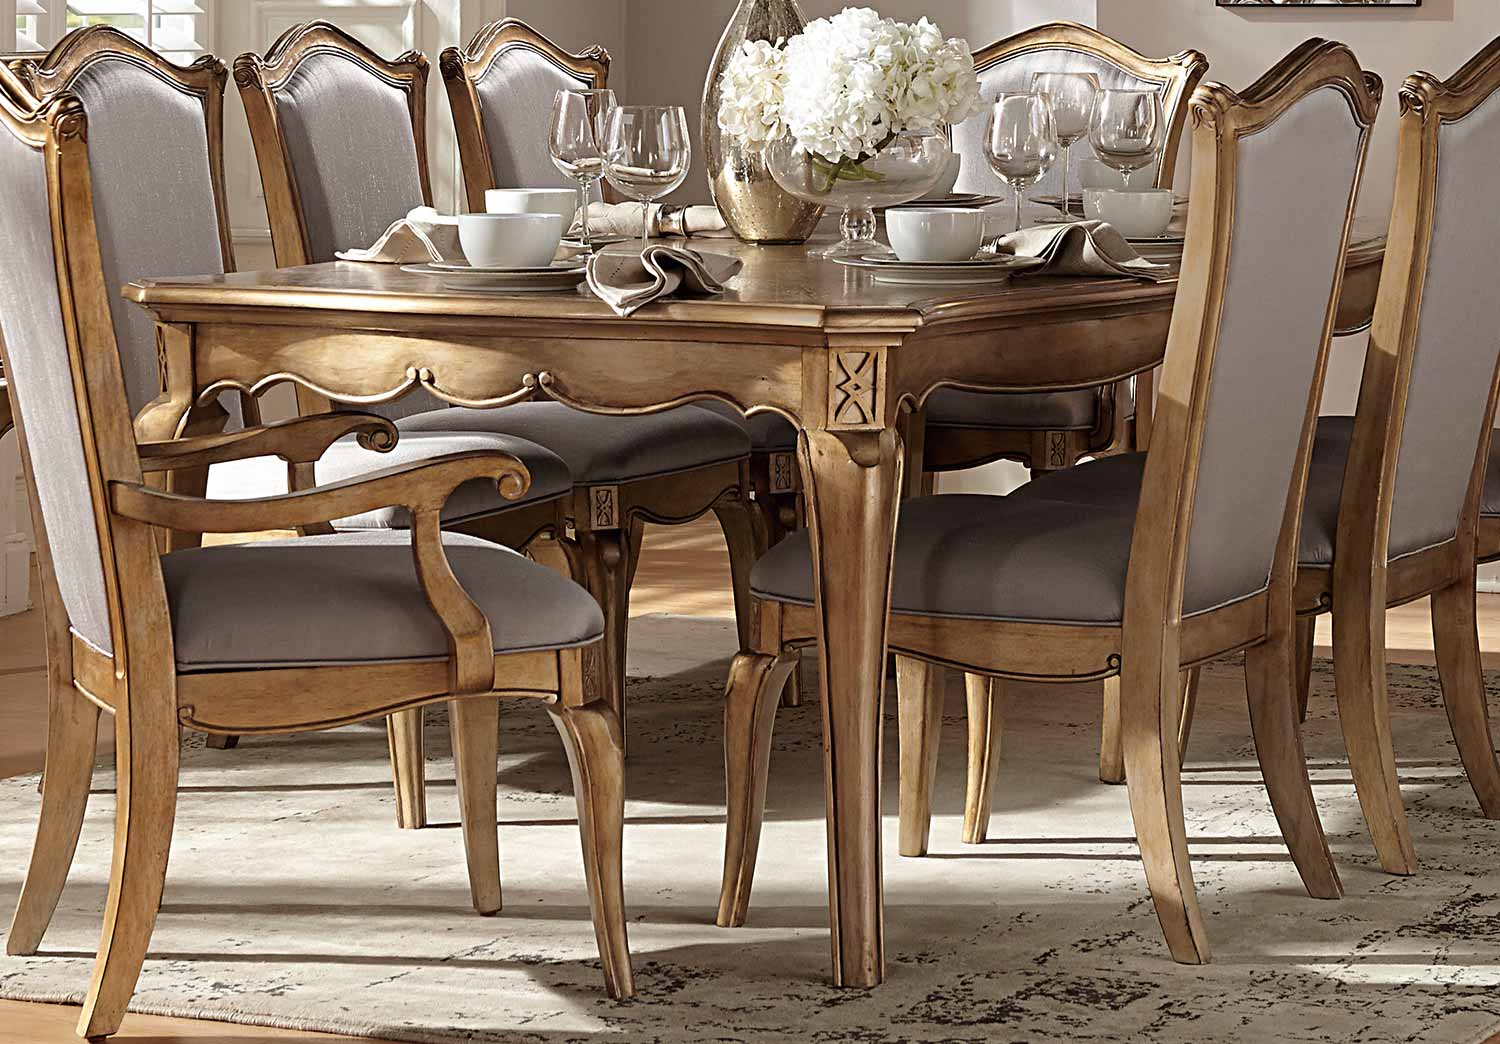 aaa74d153e2f Homelegance Chambord Dining Table - Antique Gold 1828-92 at ...